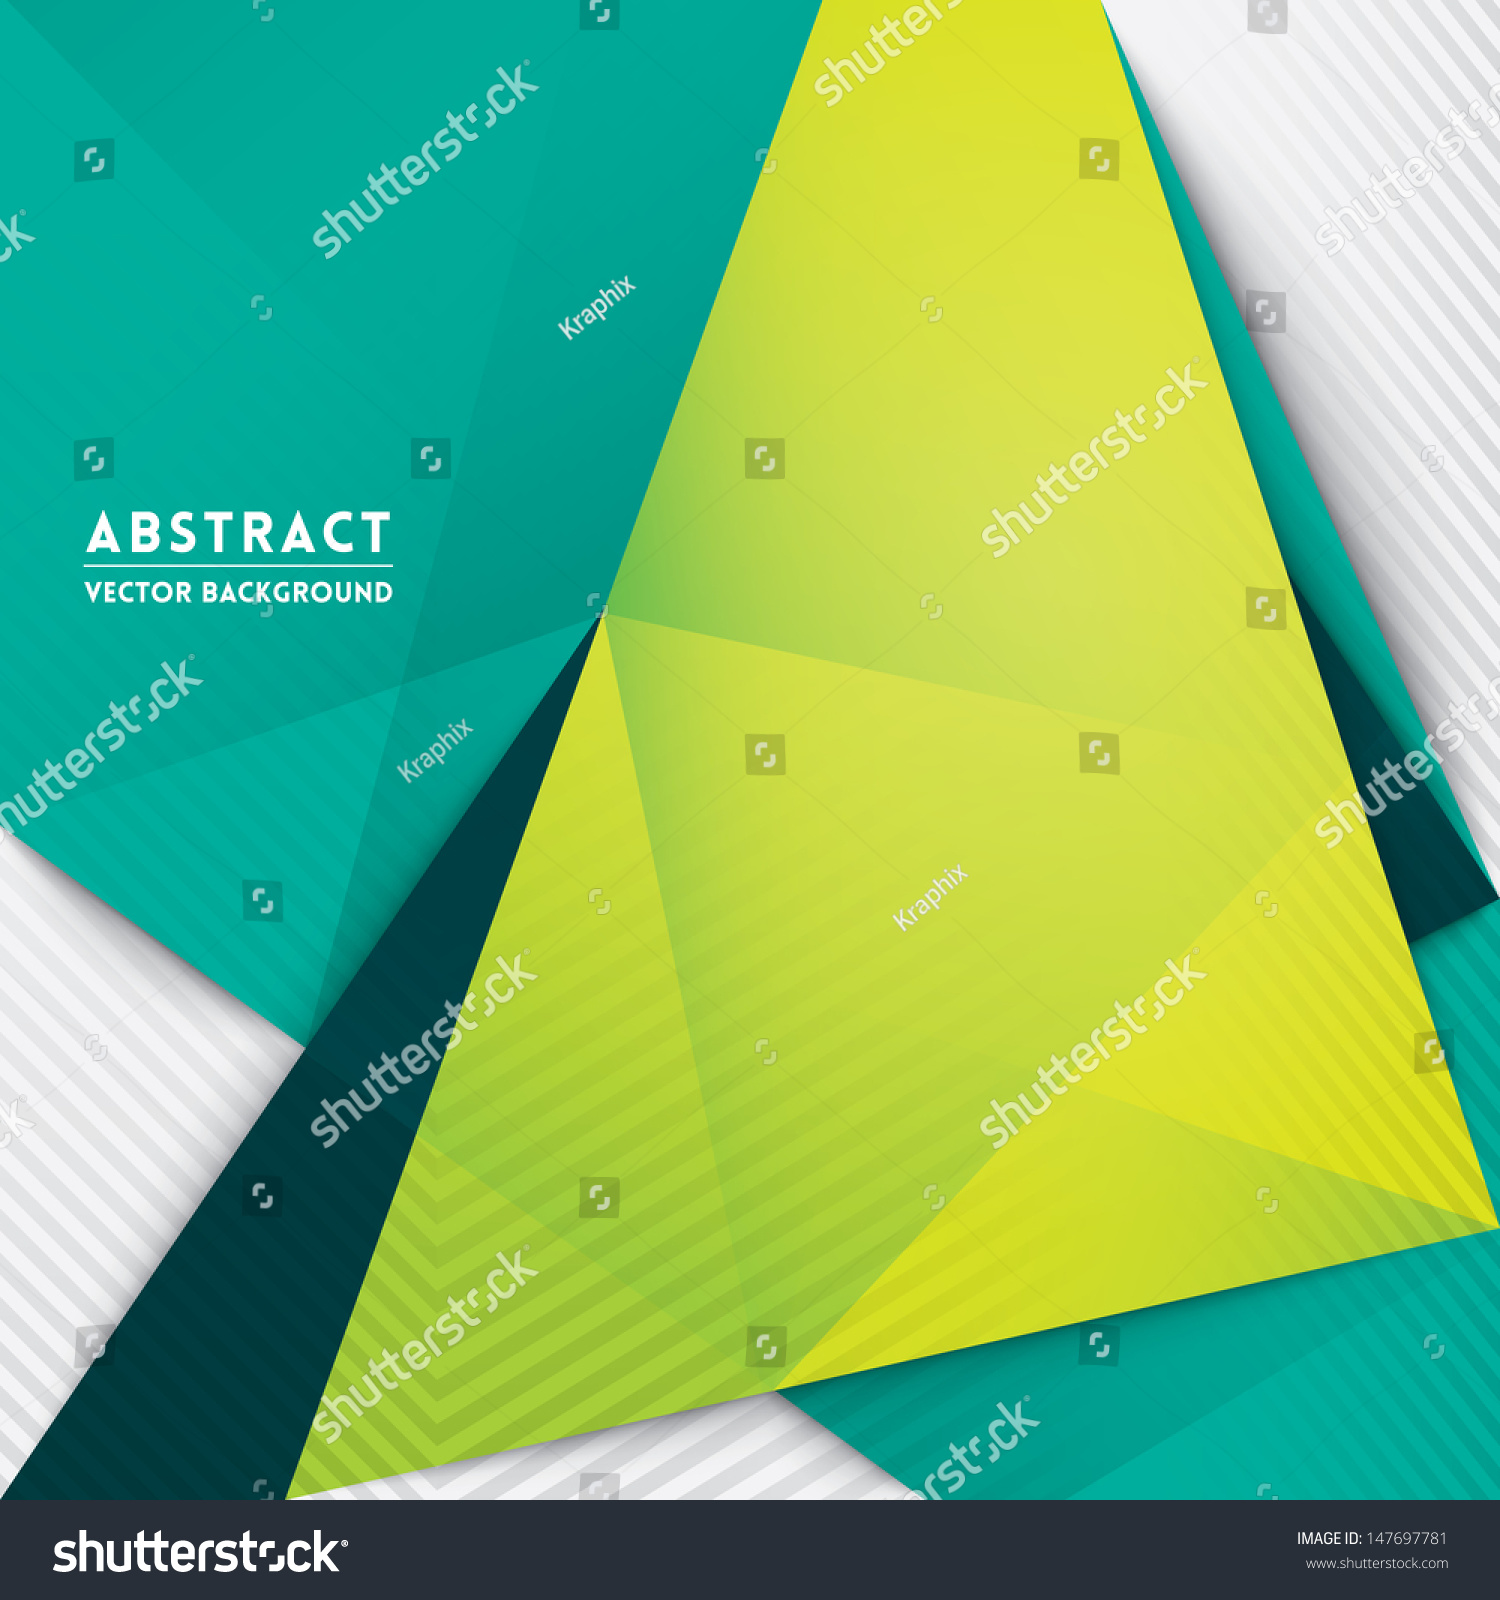 Photo Creative Backgrounds Book Cover : Abstract triangle shape background web design stock vector